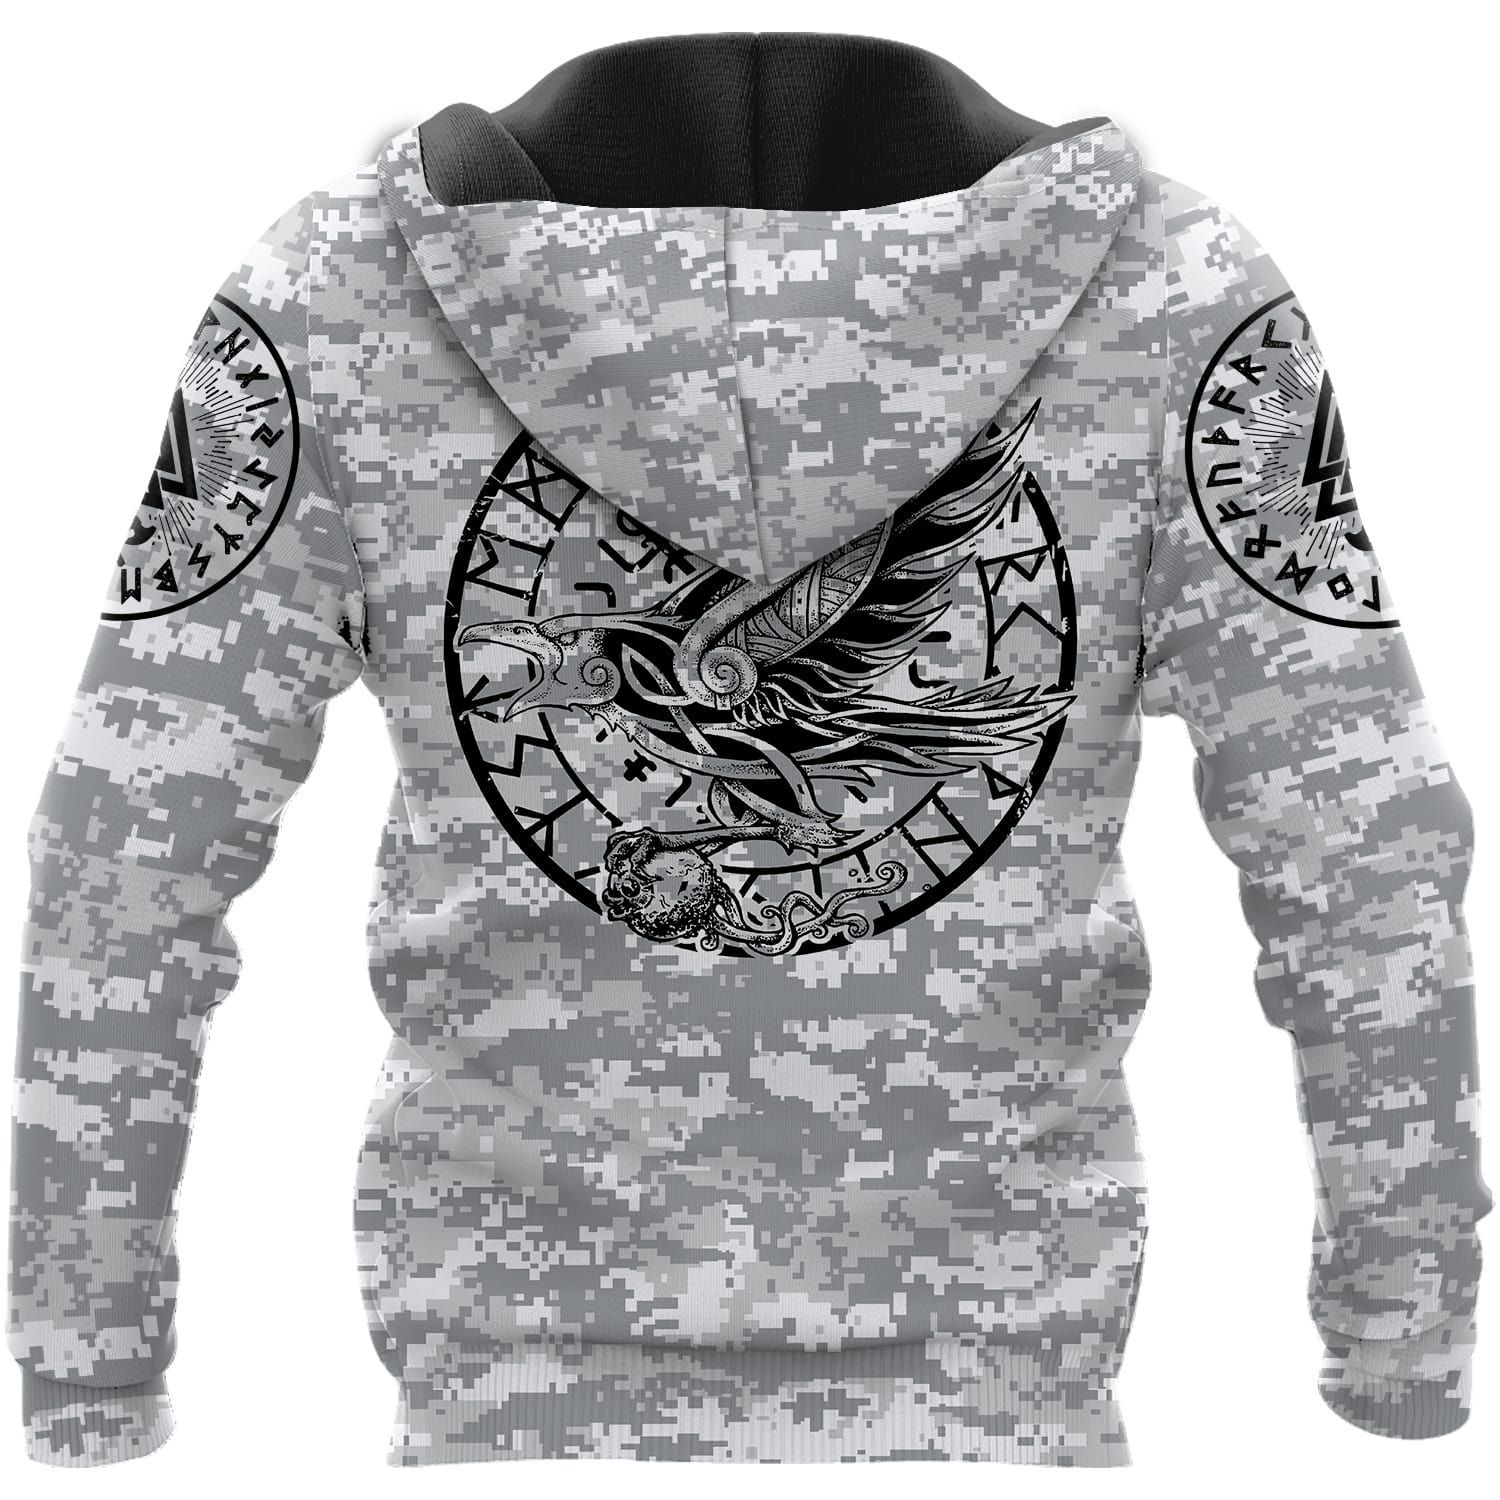 Never Gave Up Viking warrior 3D Hoodie and T-shirt